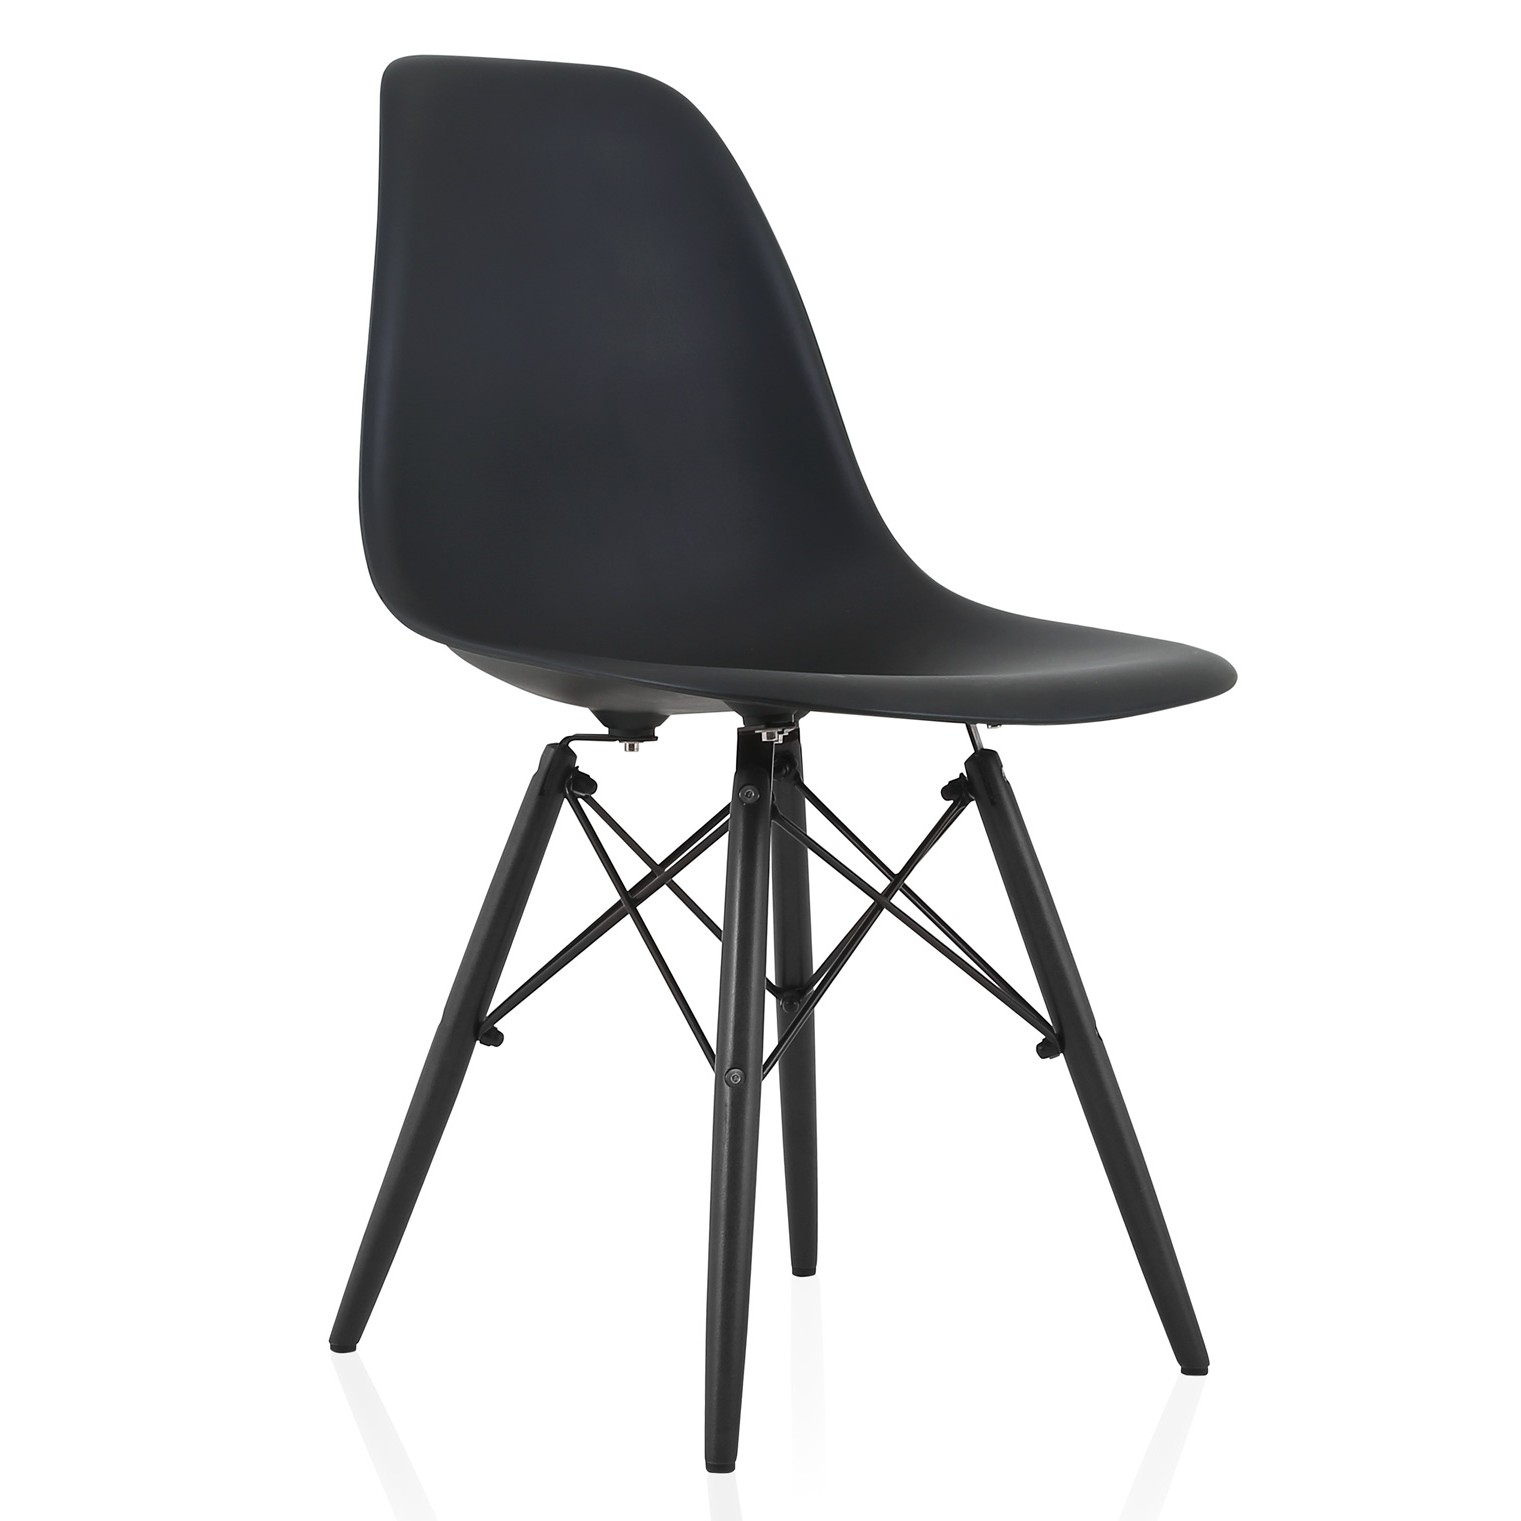 Eames style dsw molded plastic dining side chair with for Black plastic dining chairs